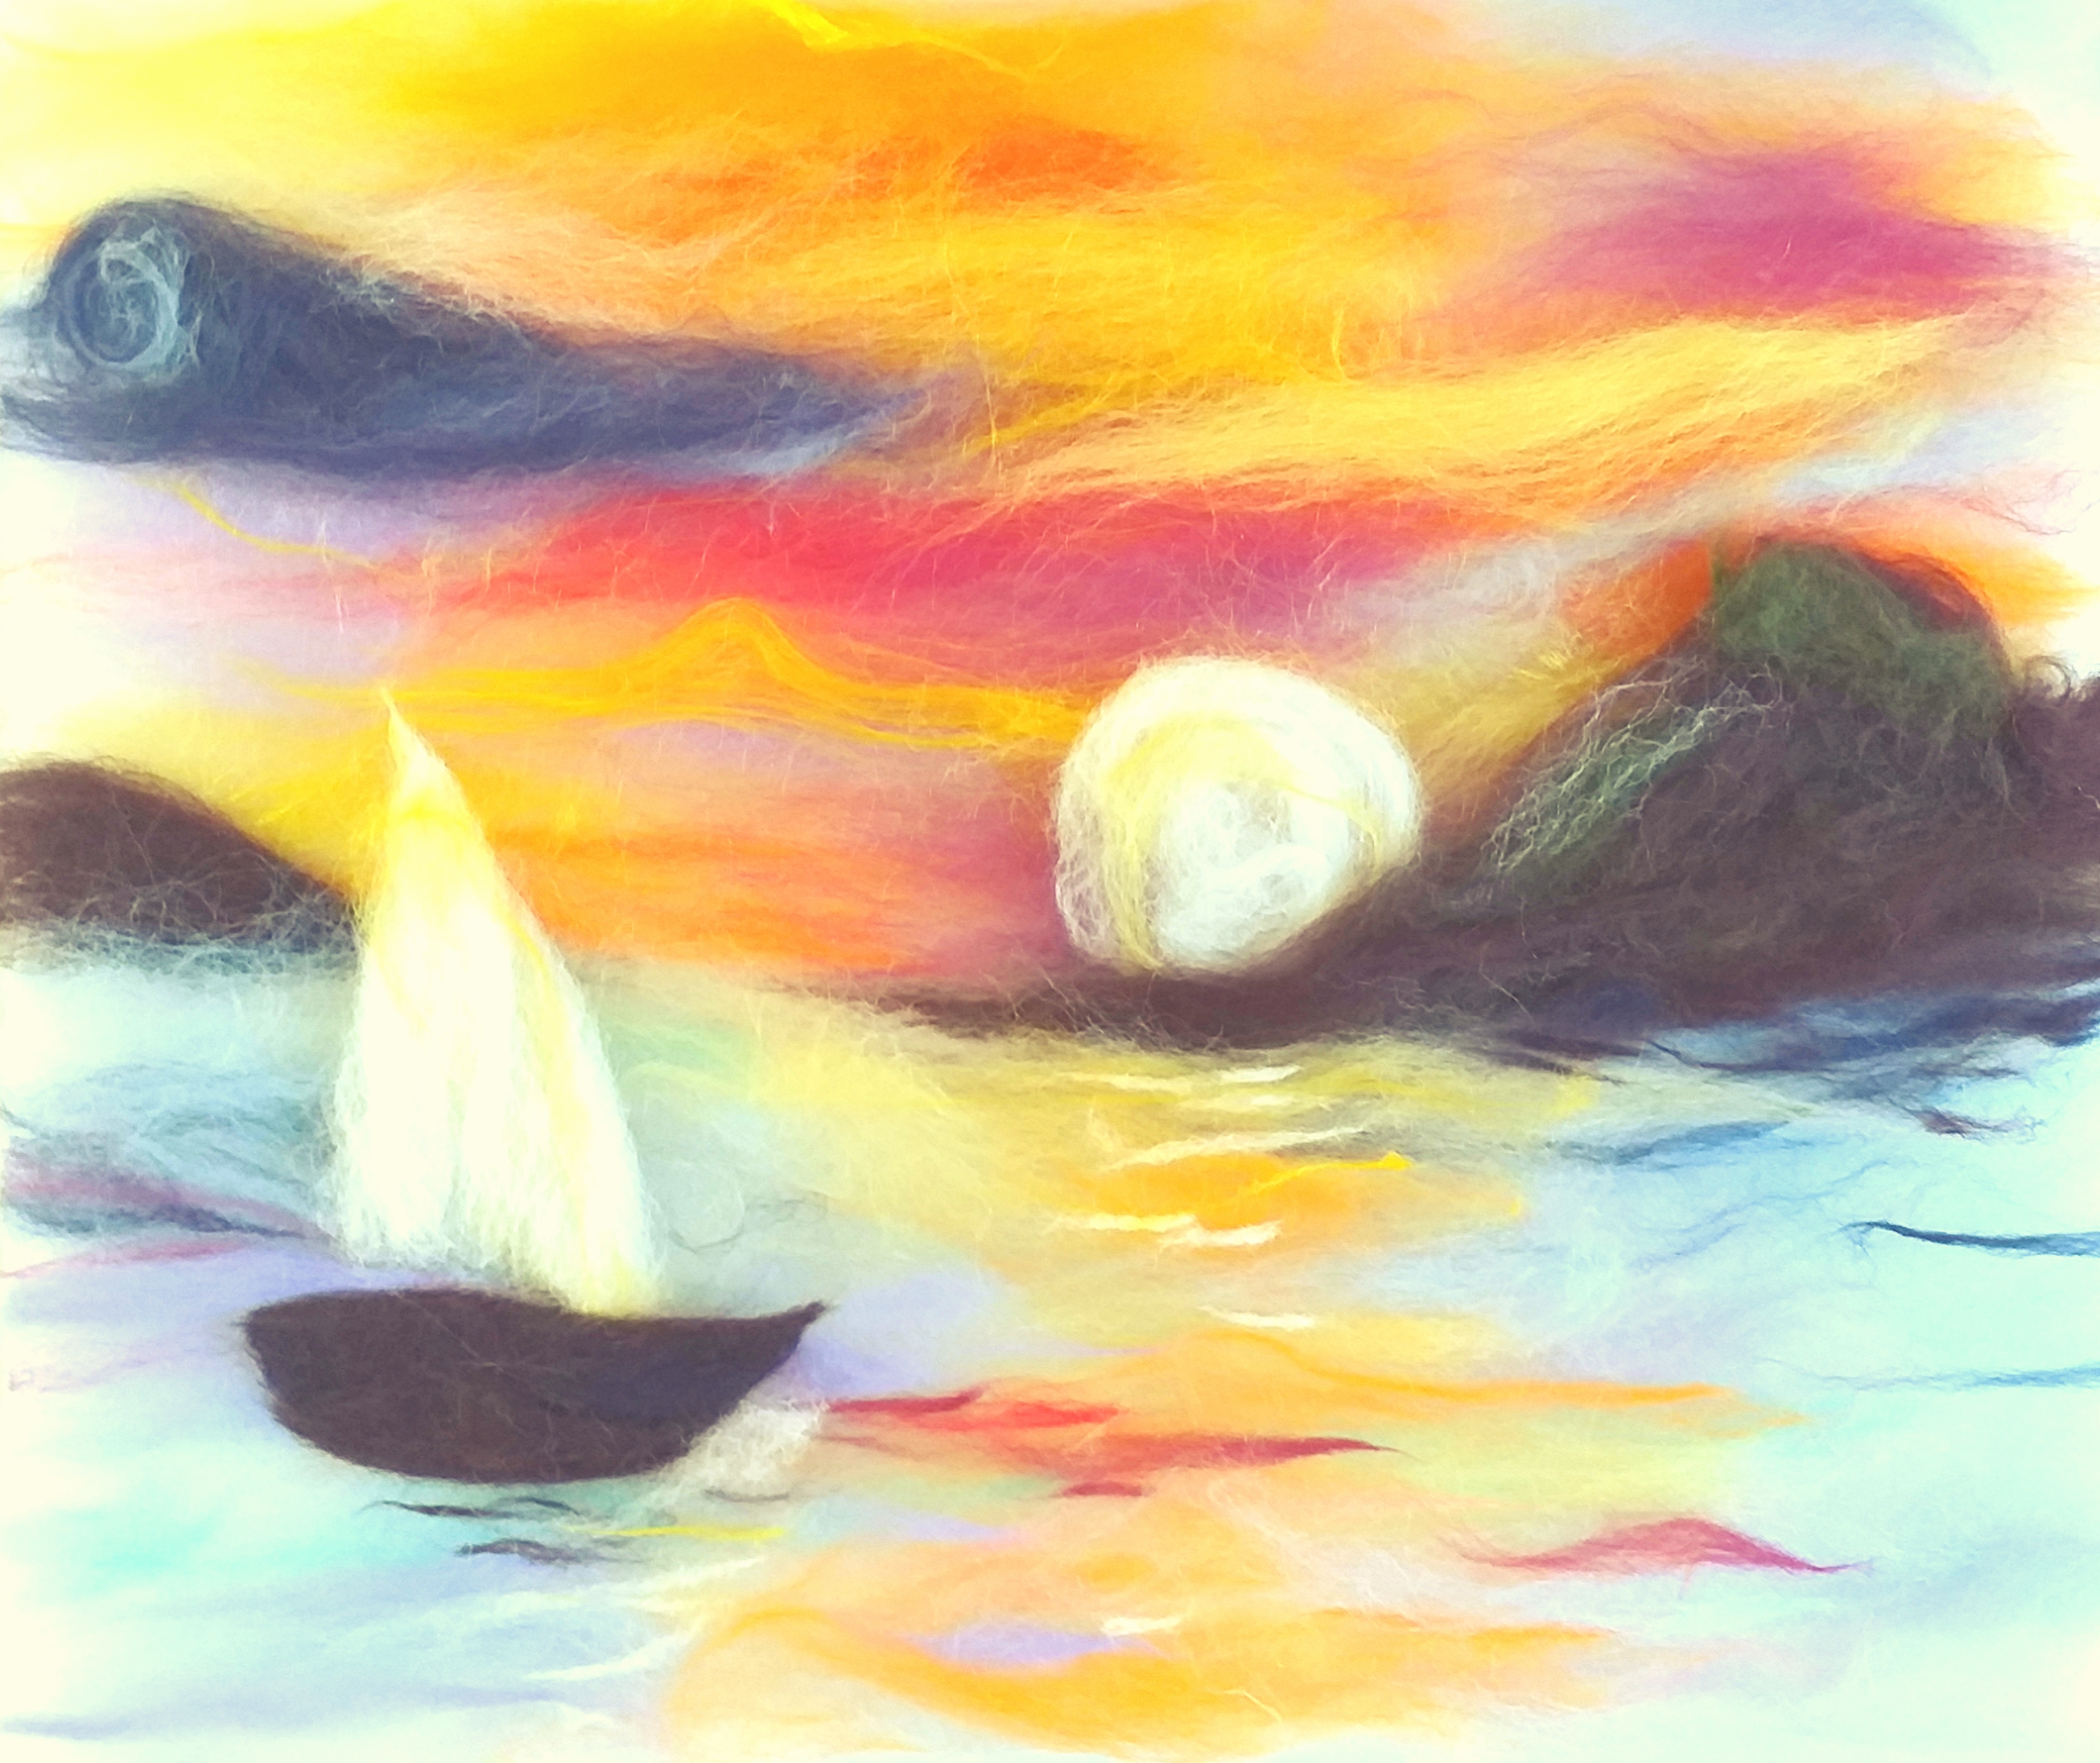 Sunset wool painting by Vicky